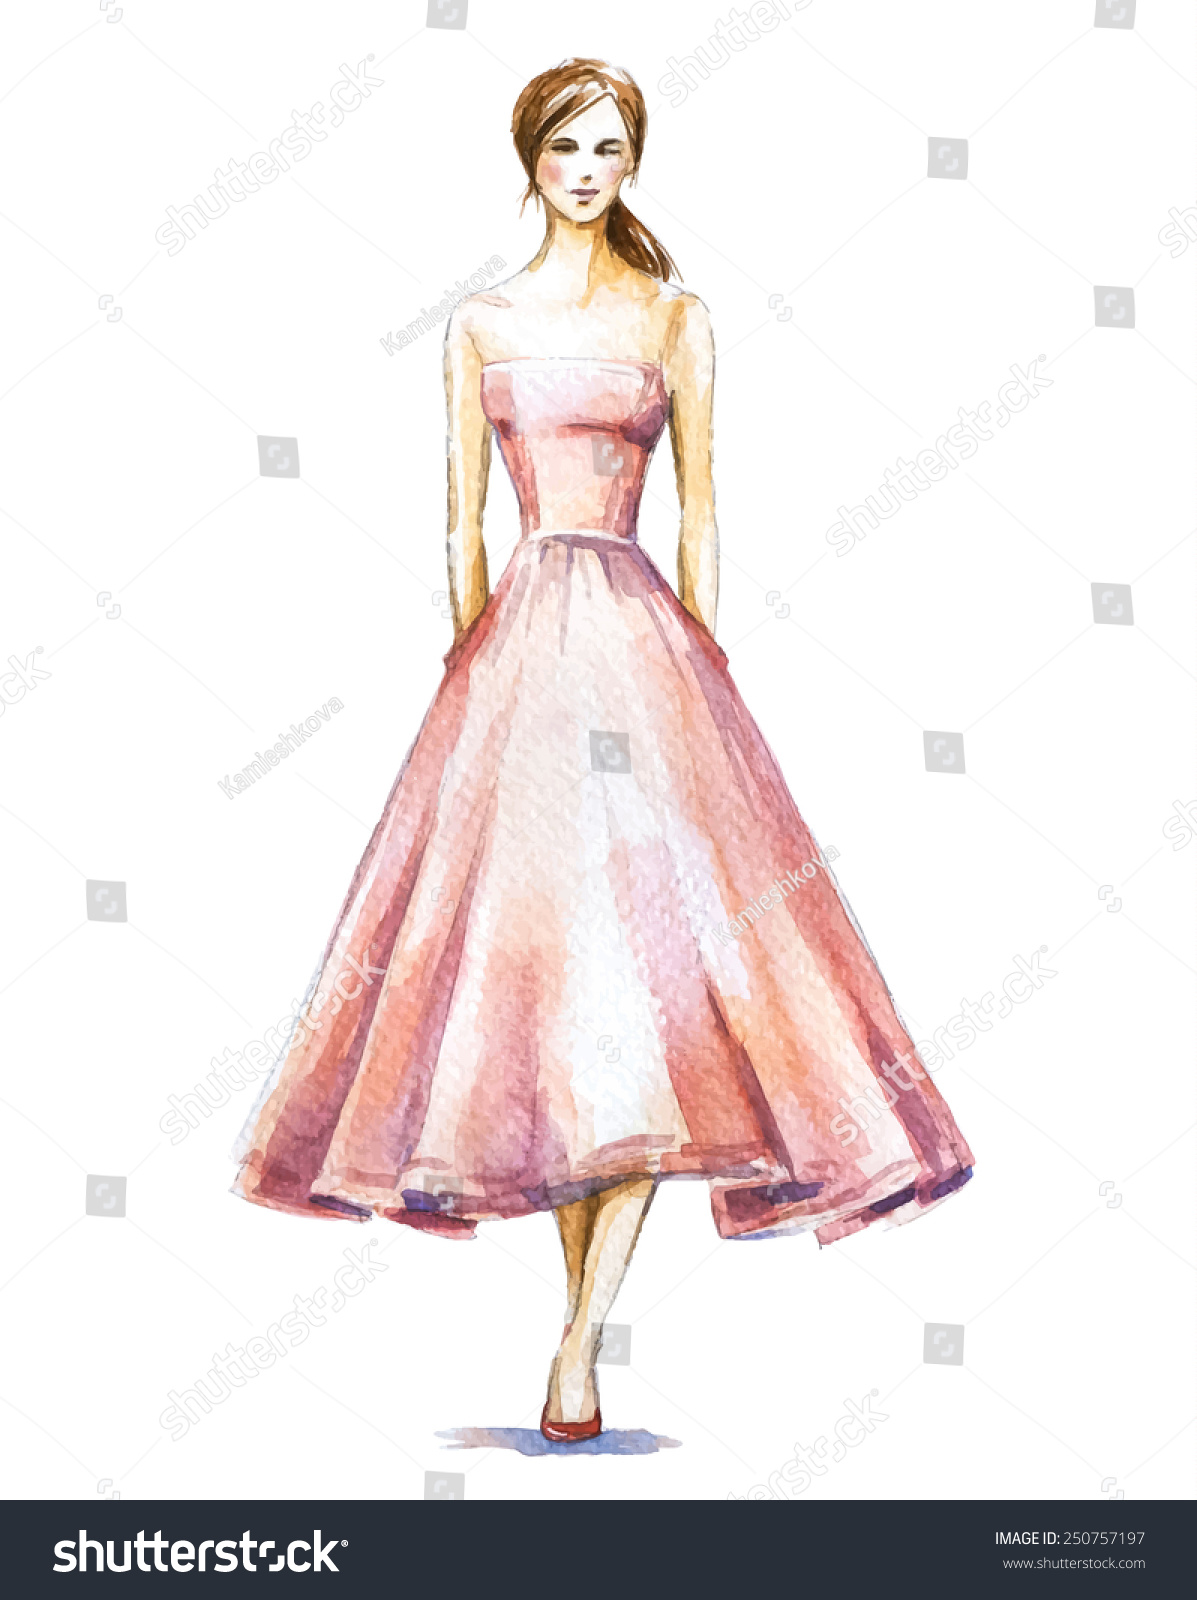 Watercolor Fashion Illustration Girl Dress Vector Stock Vector ...